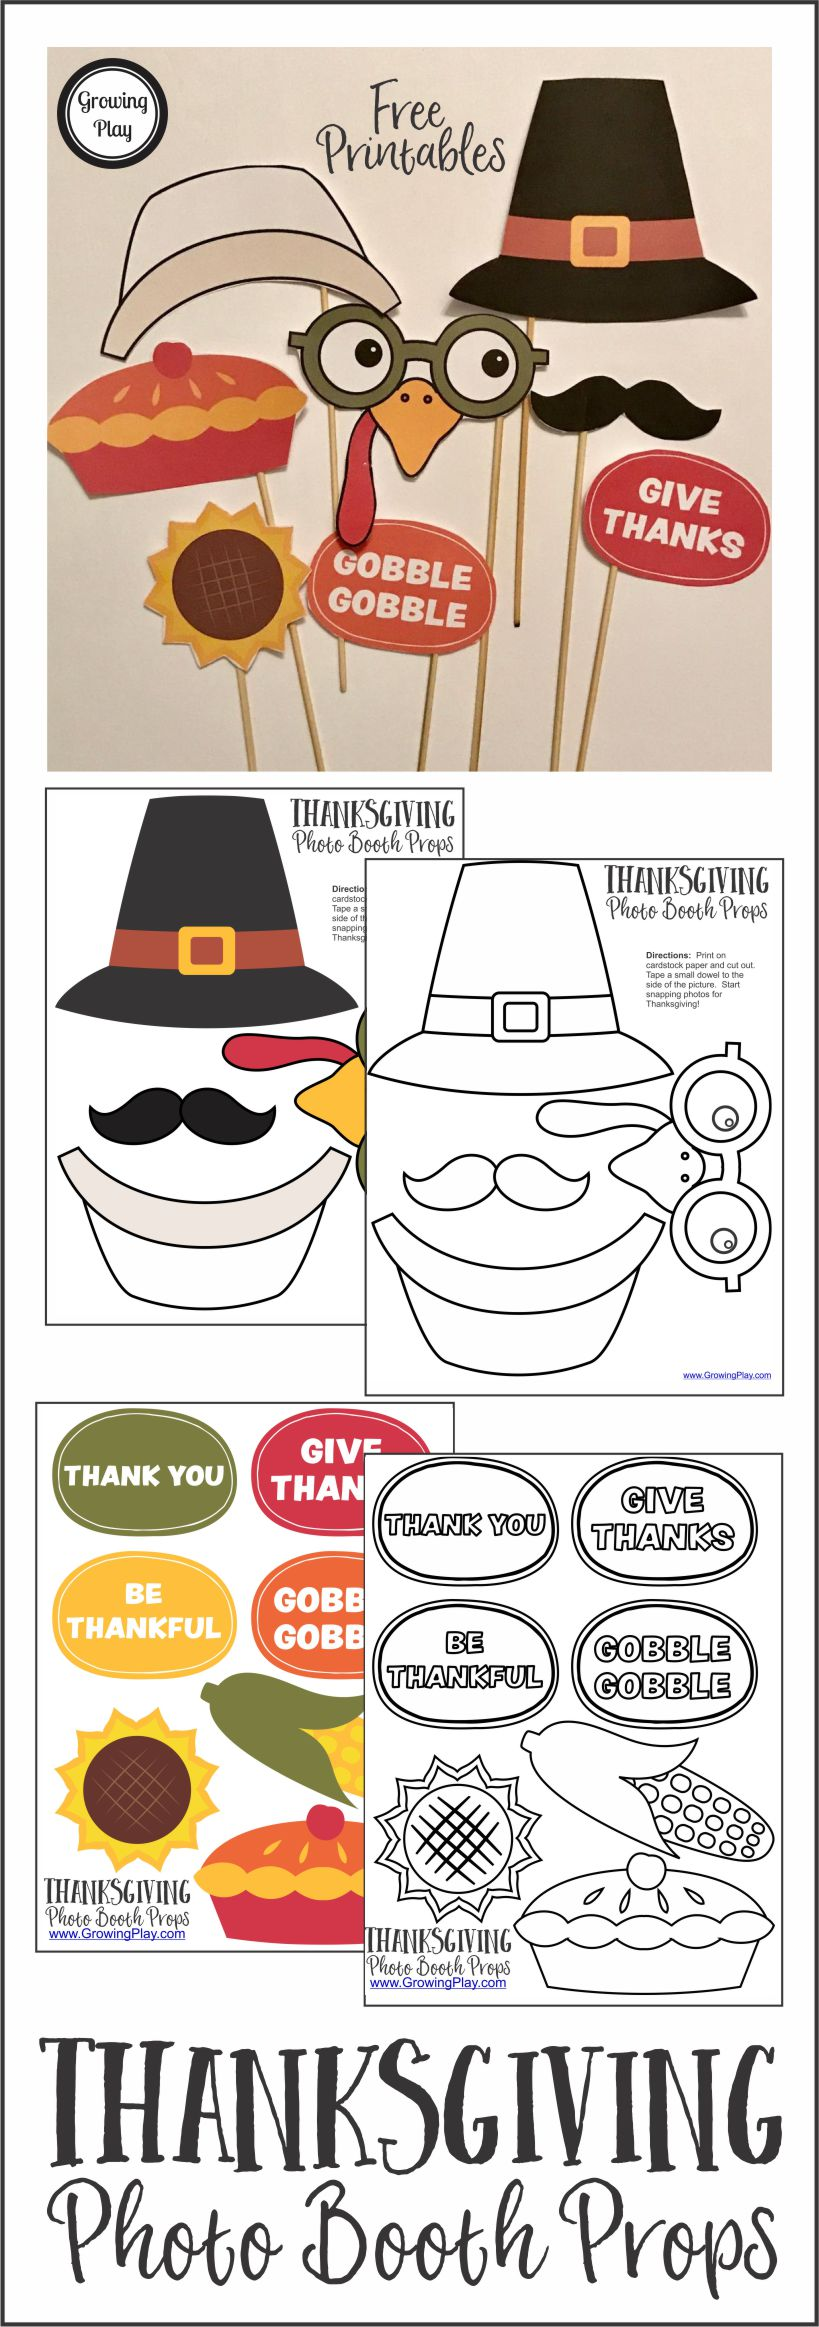 Thanksgiving Photo Booth Props FREE from Growing Play